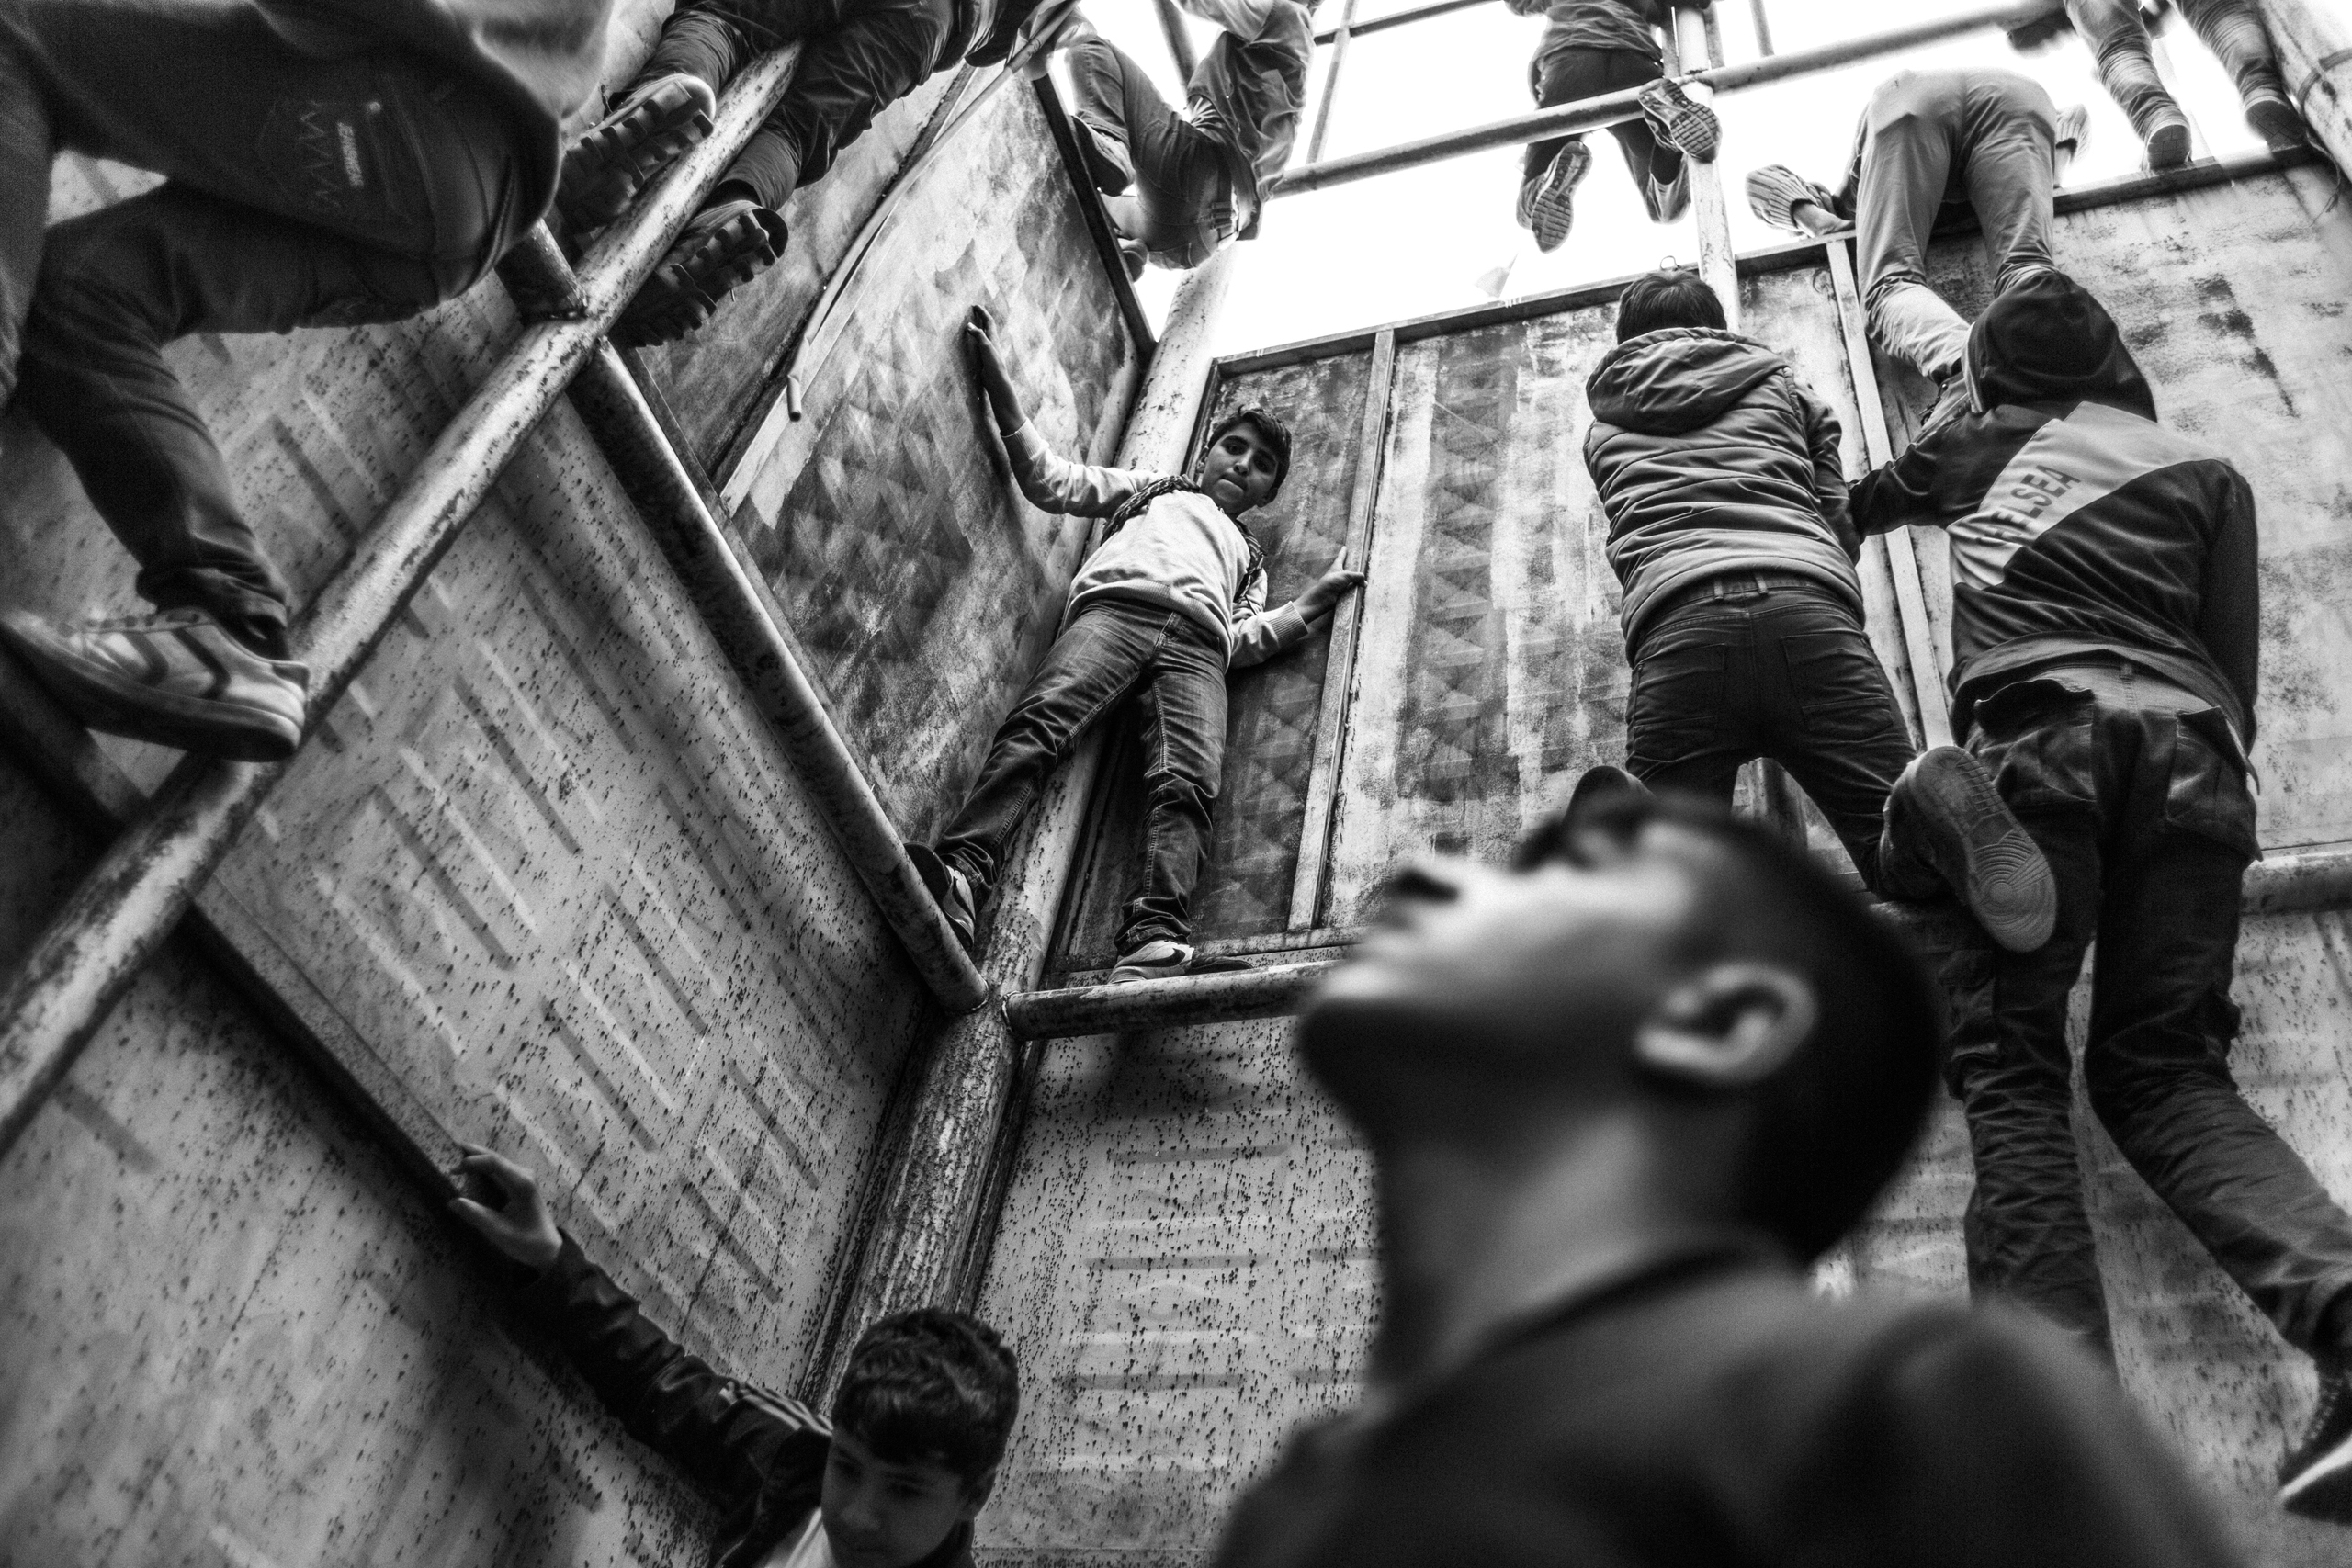 Young boys climb a platform adorned with flags during Newroz celebrations in Diyarbakir, Turkey, March 2016. In southeastern Turkey, clashes between Turkish military security forces and the Kurdish separatists resumed in the summer of 2015 after a two-year cease fire.